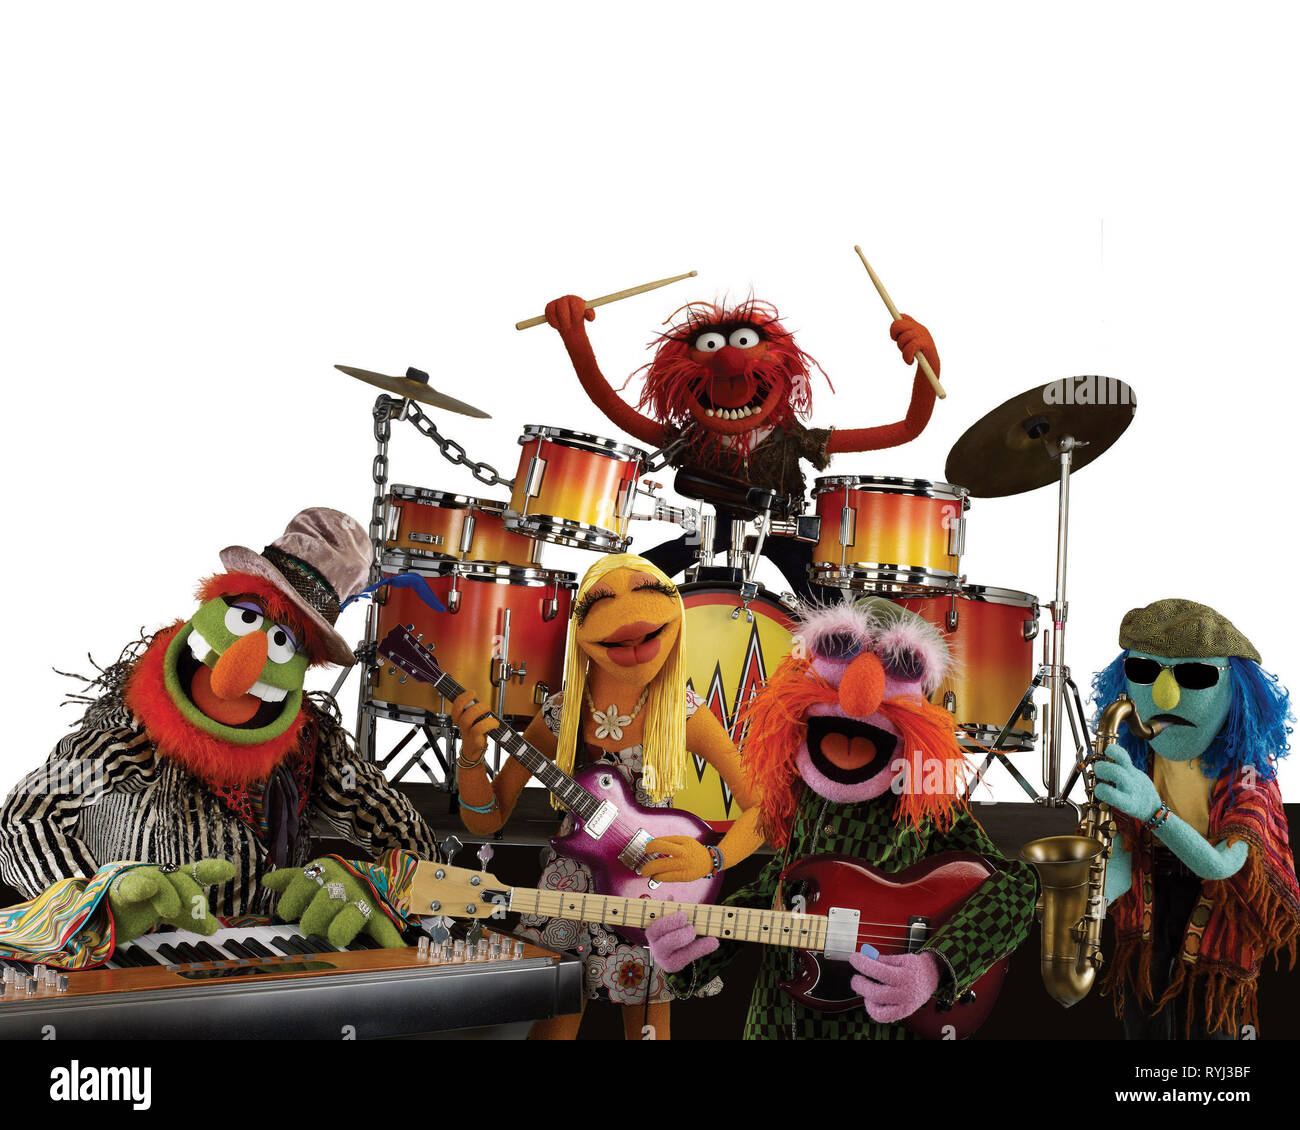 DR. TEETH, JANICE, ANIMAL, FLOYD PEPPER, ZOOT, THE MUPPETS, 2011 - Stock Image